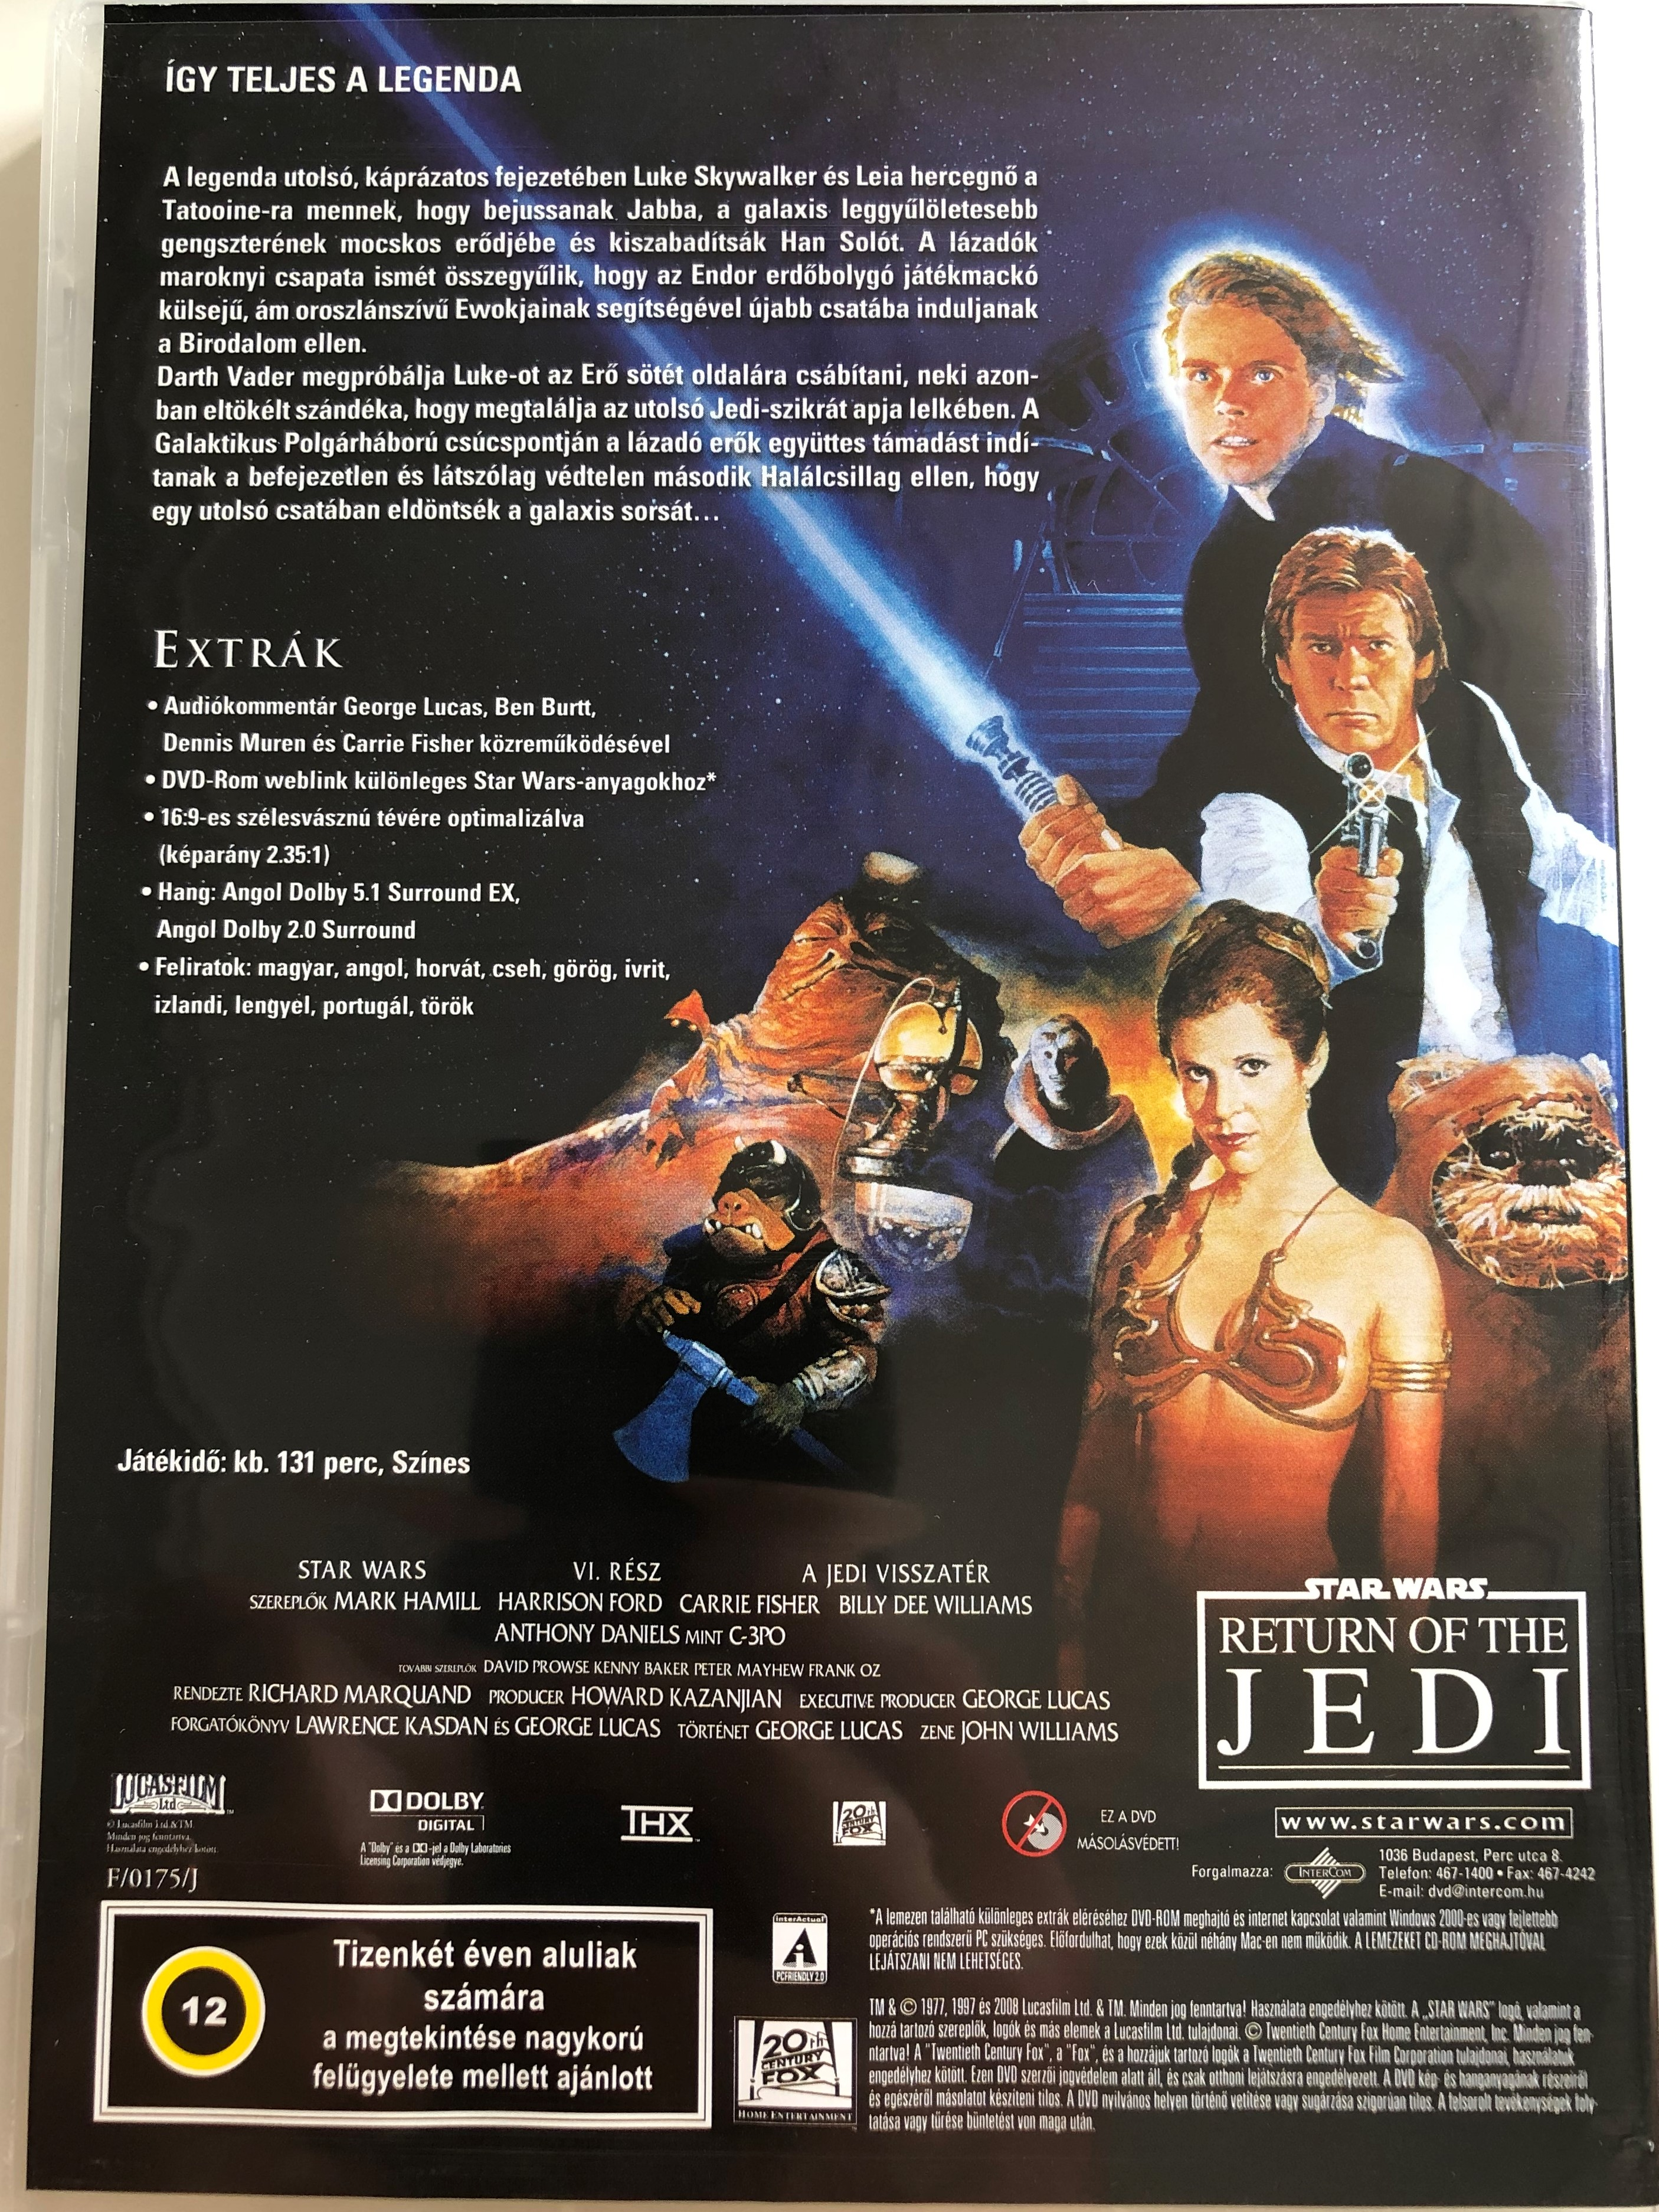 star-wars-episode-vi-return-of-the-jedi-dvd-1983-star-wars-vi-a-jedi-visszat-r-directed-by-richard-marquand-starring-mark-hamill-harrison-ford-carrie-fisher-billy-dee-williams-anthony-daniels-david-prowse-2-.jpg